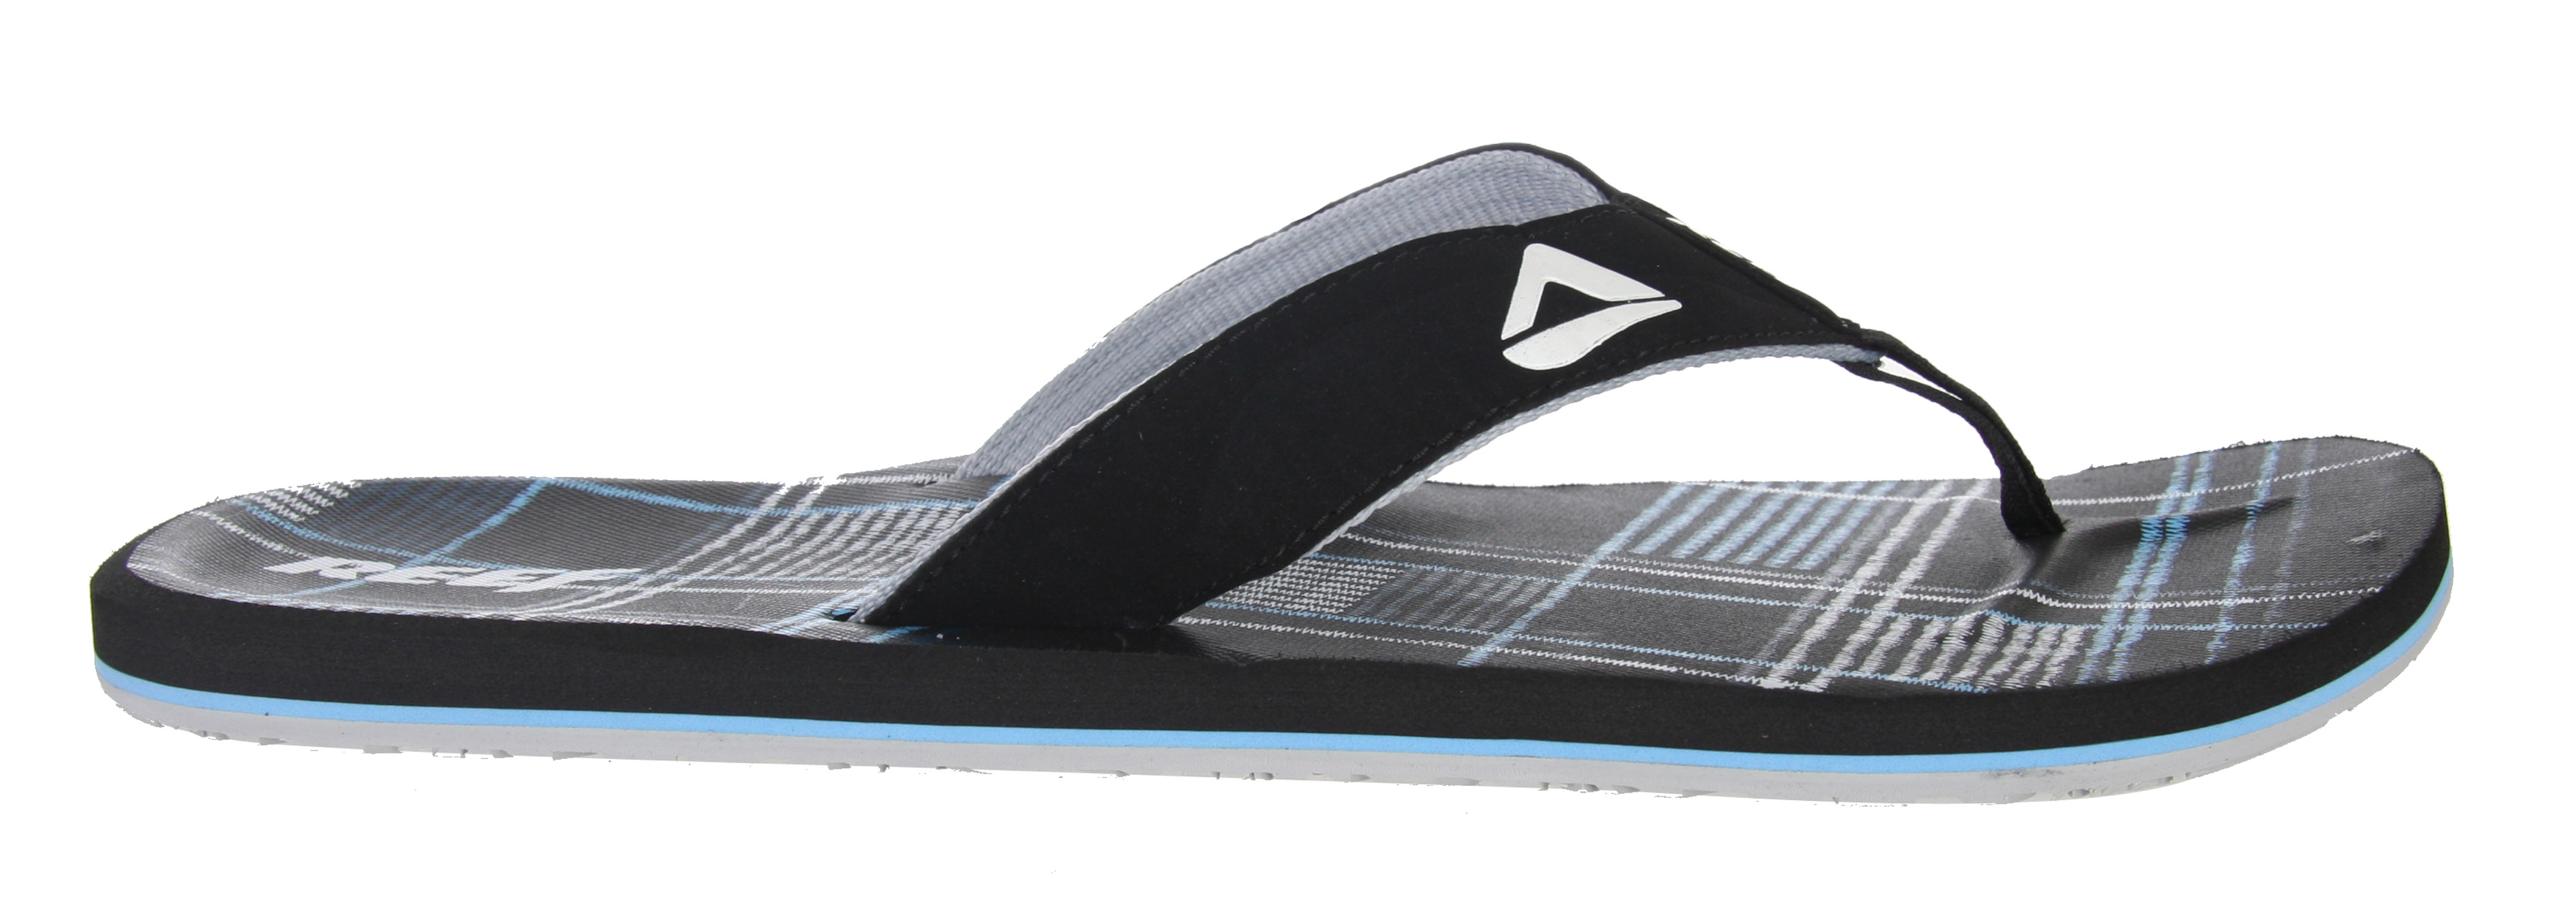 Surf Summer is near so get ready to put on your swimsuit and hit the beach. Be sure to include the Reef HT Prints Sandals in your outfit. Featuring a sleek and simple design, this T-strap sandal is ideal for casual beachwear. With a molded footbed, super great arch support and grippy soles, these are perfect to wear all summer long in comfort and style.Key Features of the Reef HT Prints Sandals: Soft, comfortable, water friendly synthetic nubuck upper Soft reef polyester woven lining Contoured Eva footbed with anatomical arch support Grippy molded reef rubber outsole - $15.95